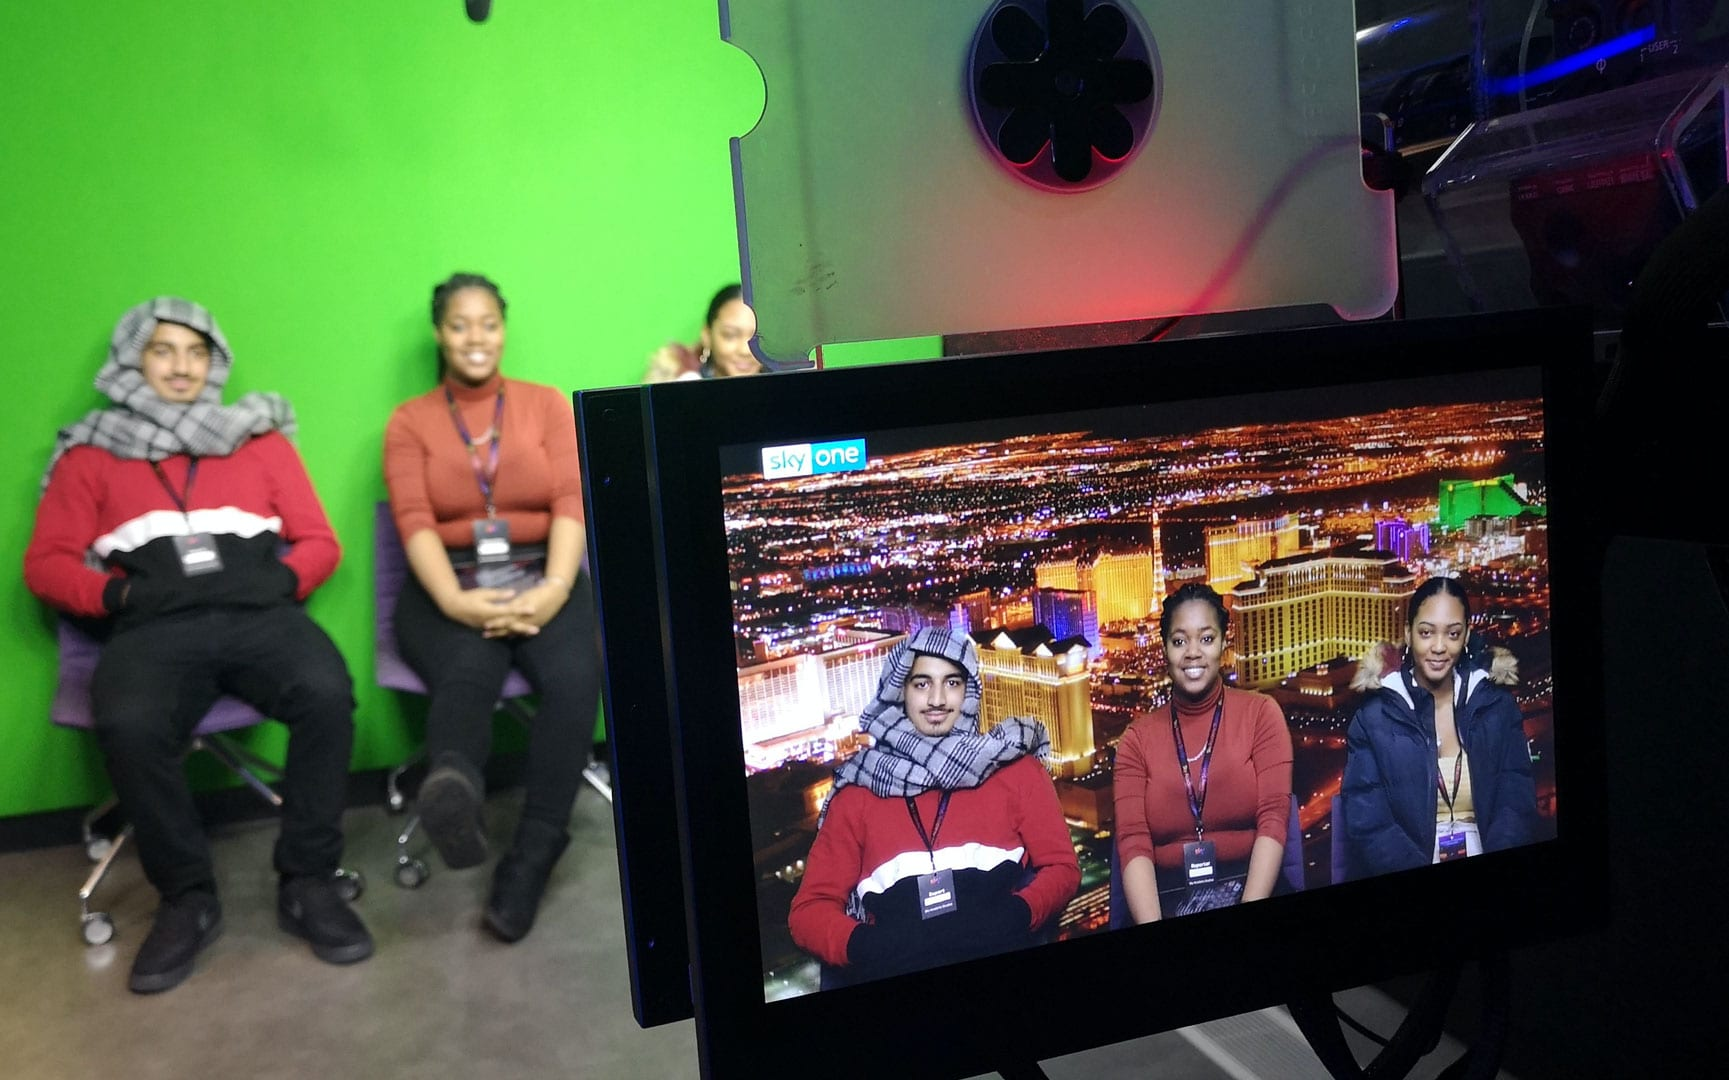 Media Students Visit Sky Academy Studios